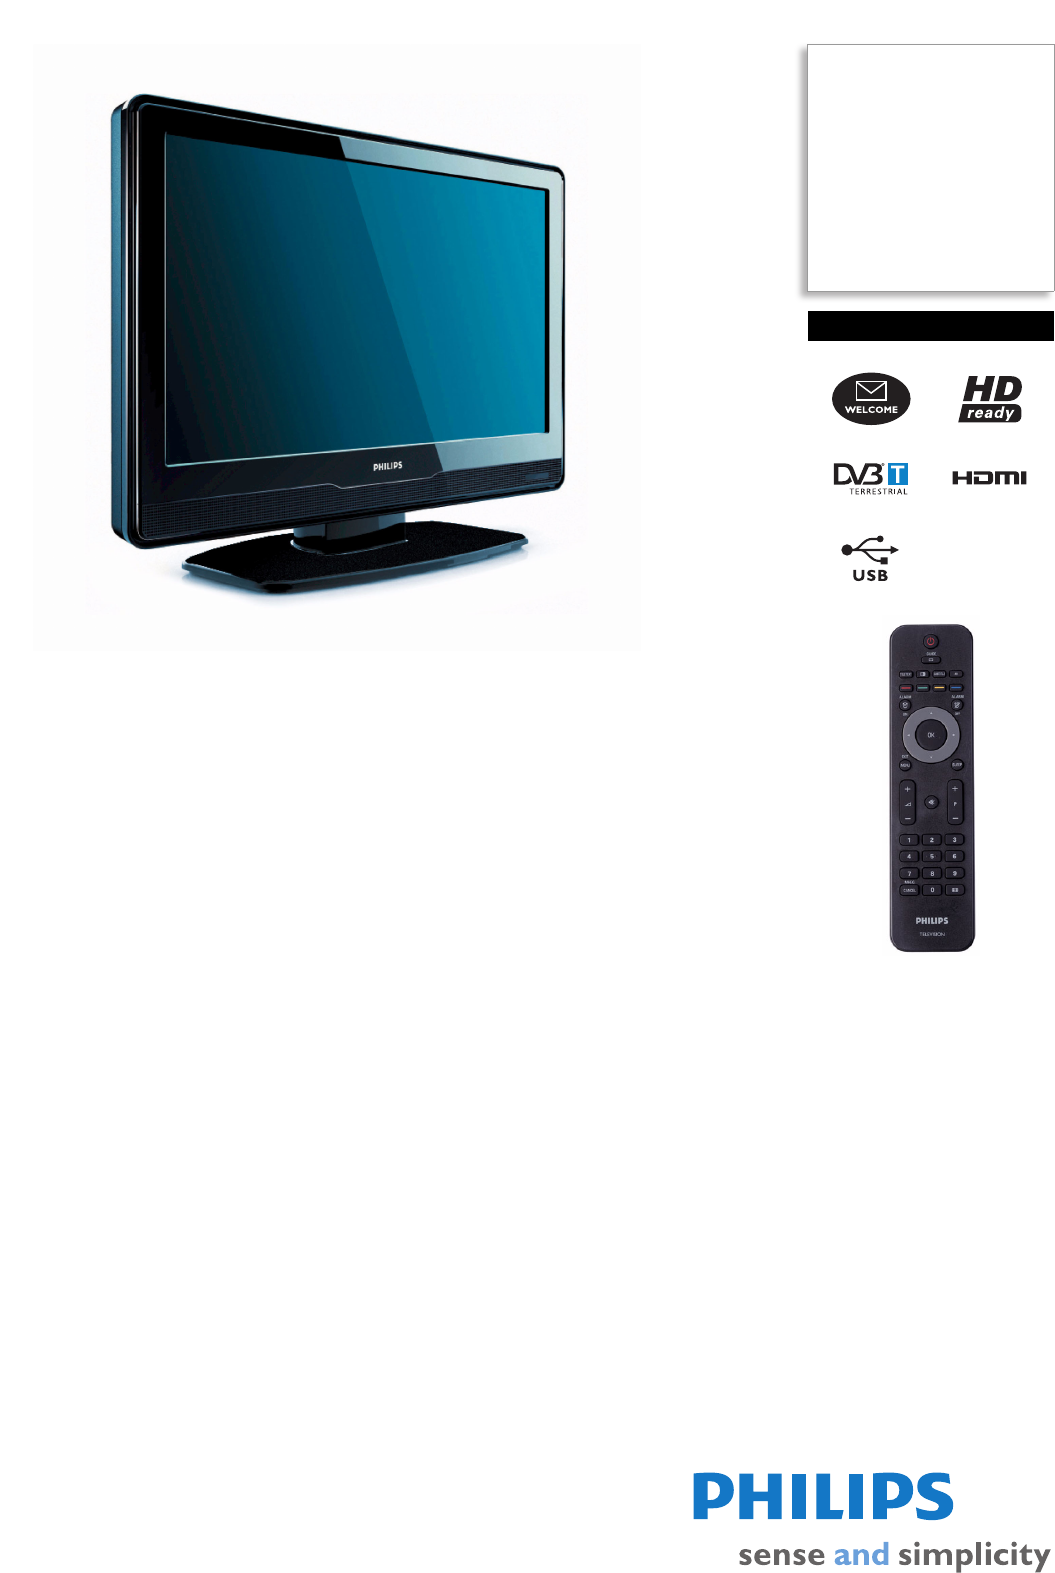 philips flat panel television 19hfl3340d user guide manualsonline com rh tv manualsonline com Philips Flat TV Owner Manual Philips HDTV Manual